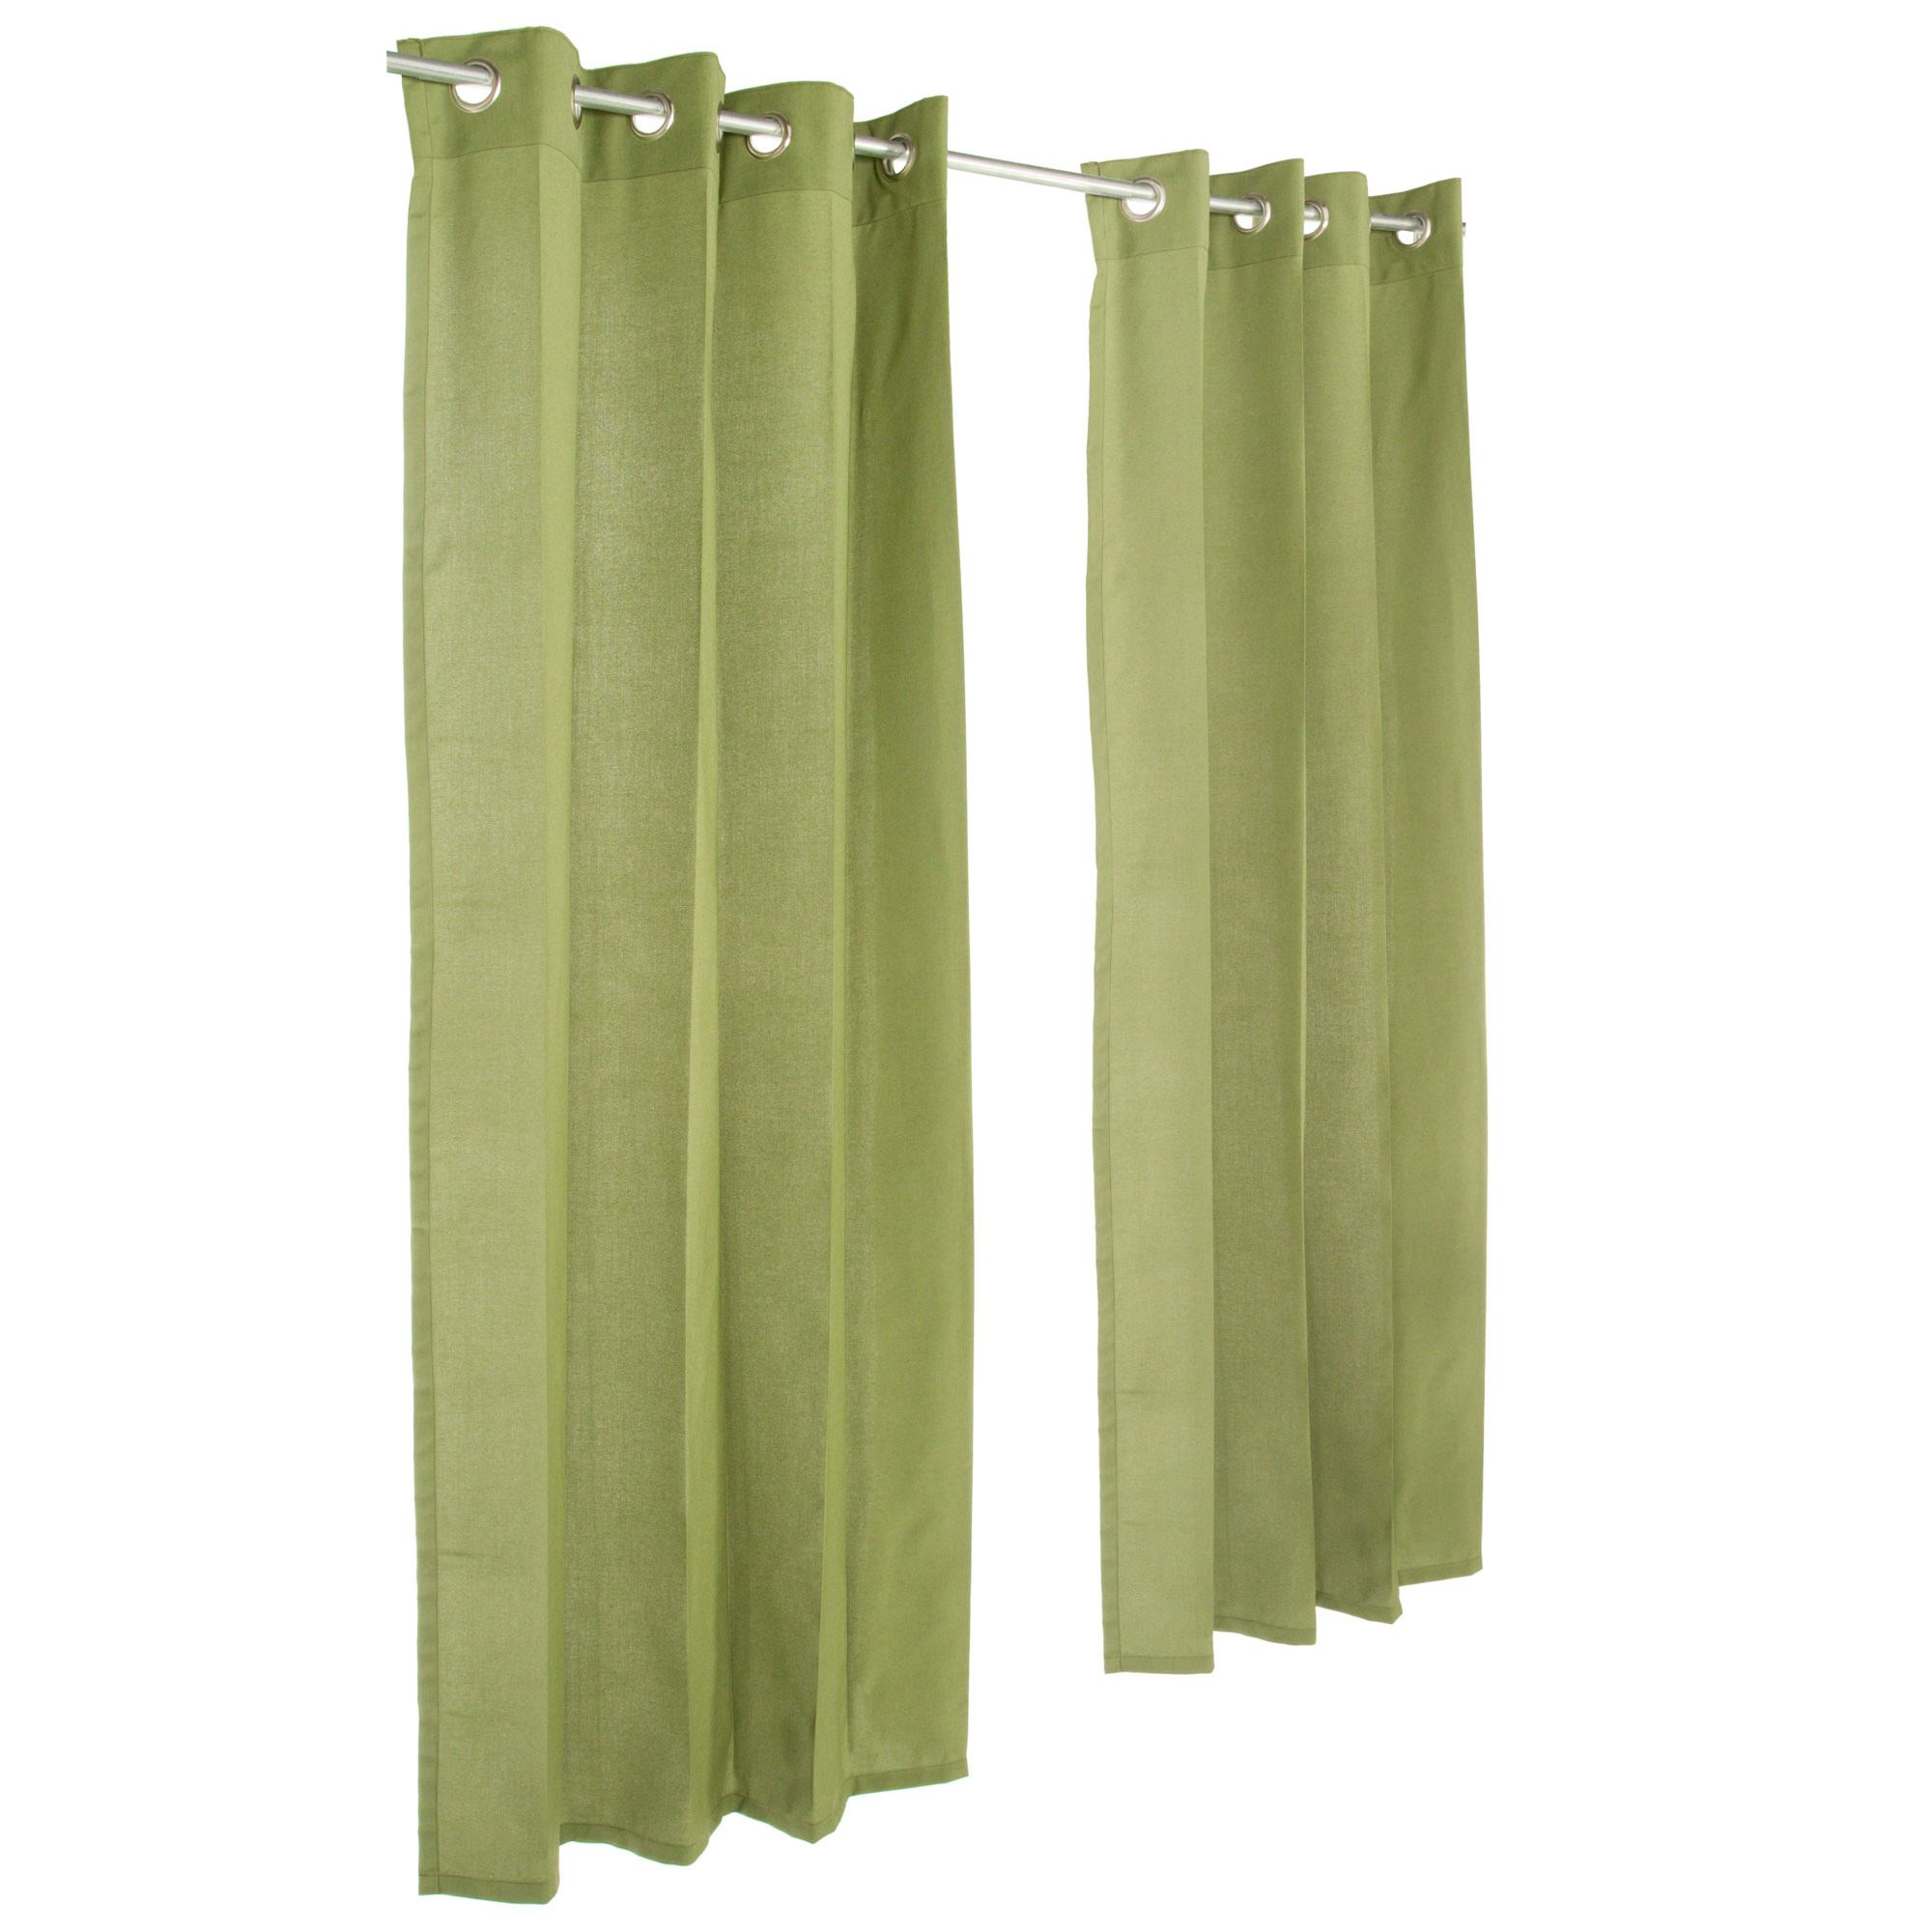 Sunbrella Spectrum Cilantro Outdoor Curtain with Nickel Plated Grommets by Essentials by DFO